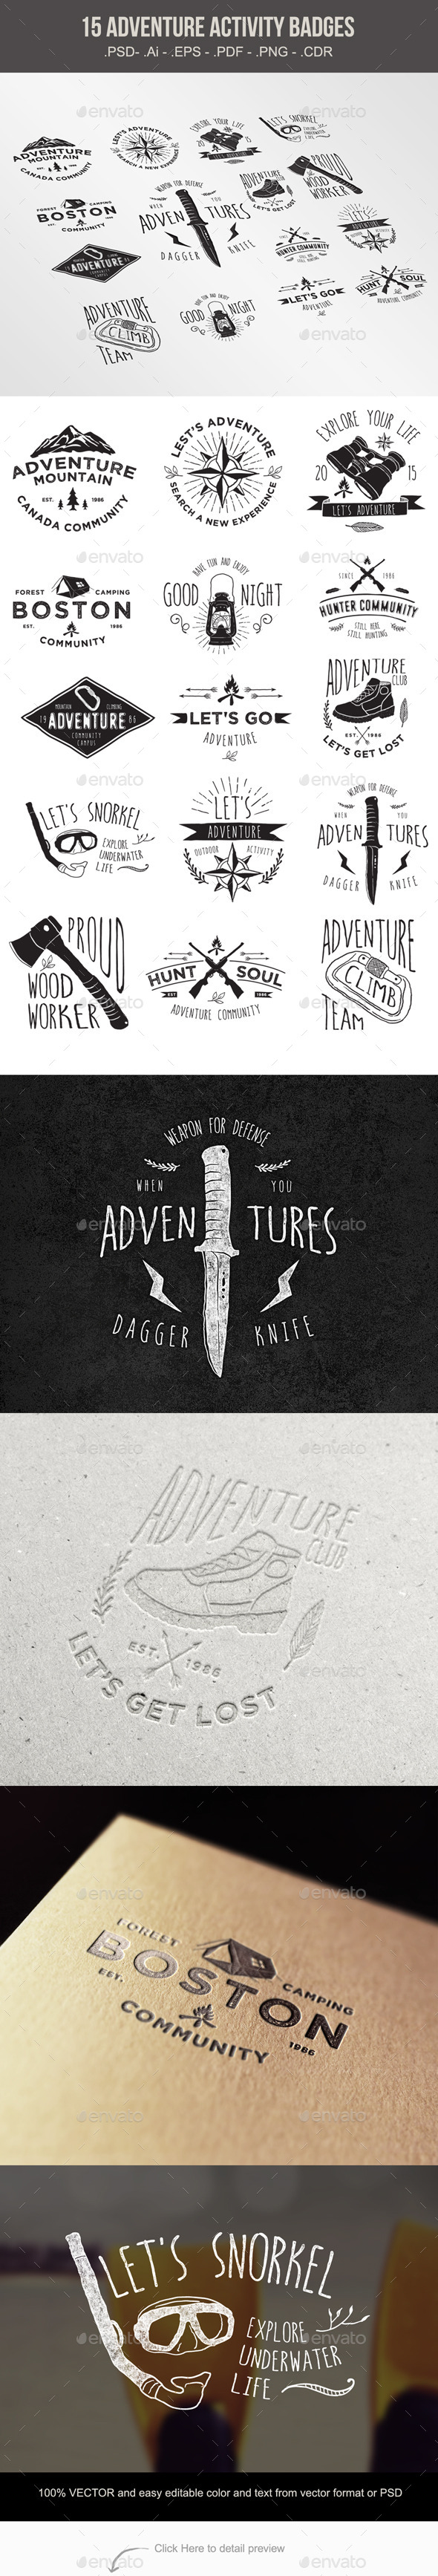 GraphicRiver 15 Adventure Activity Badges 10818185